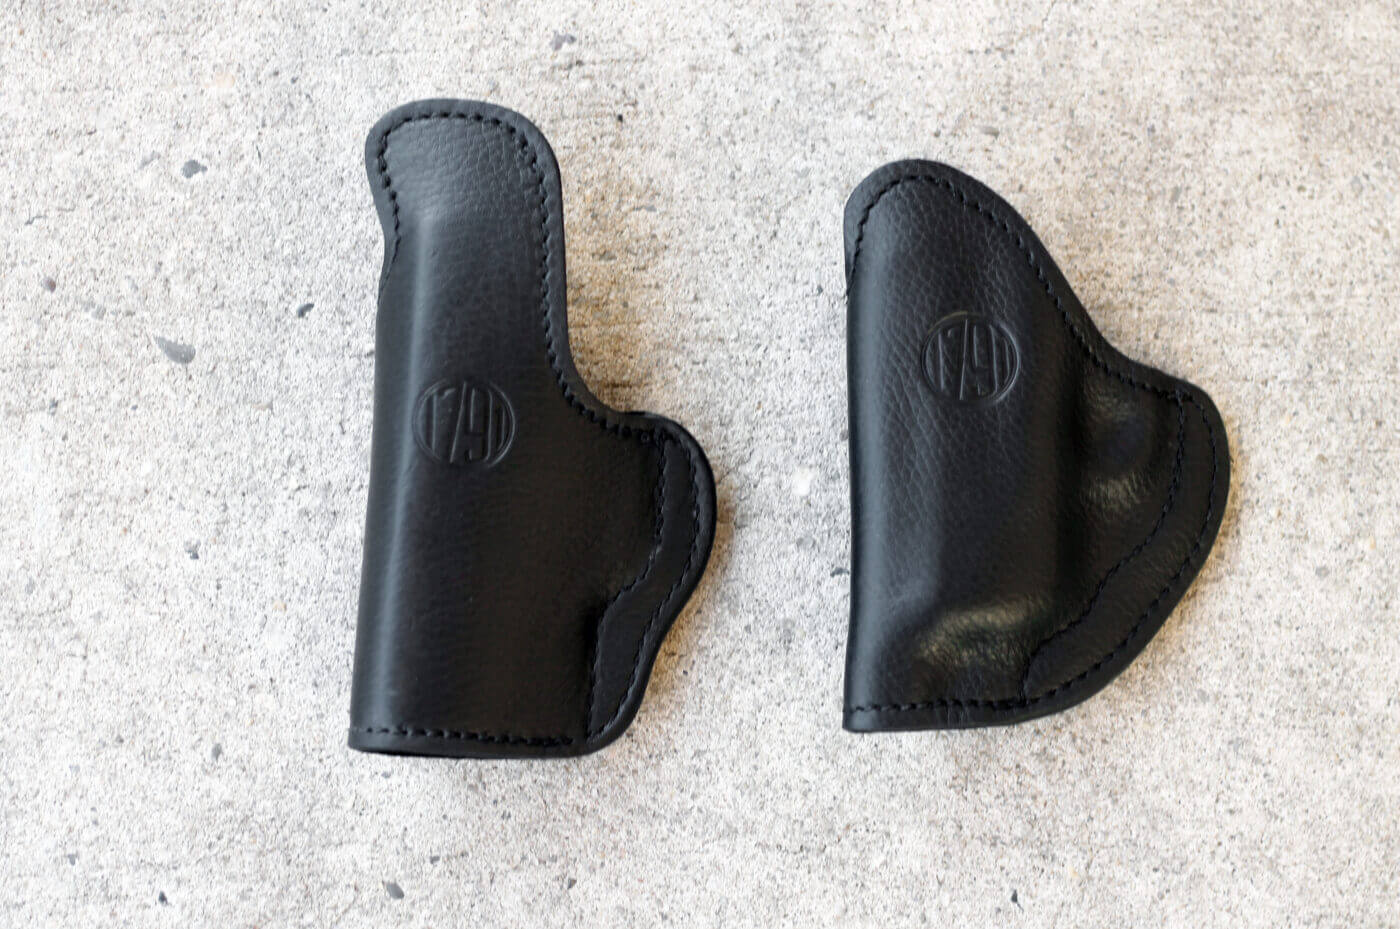 Before and after of the holster molding